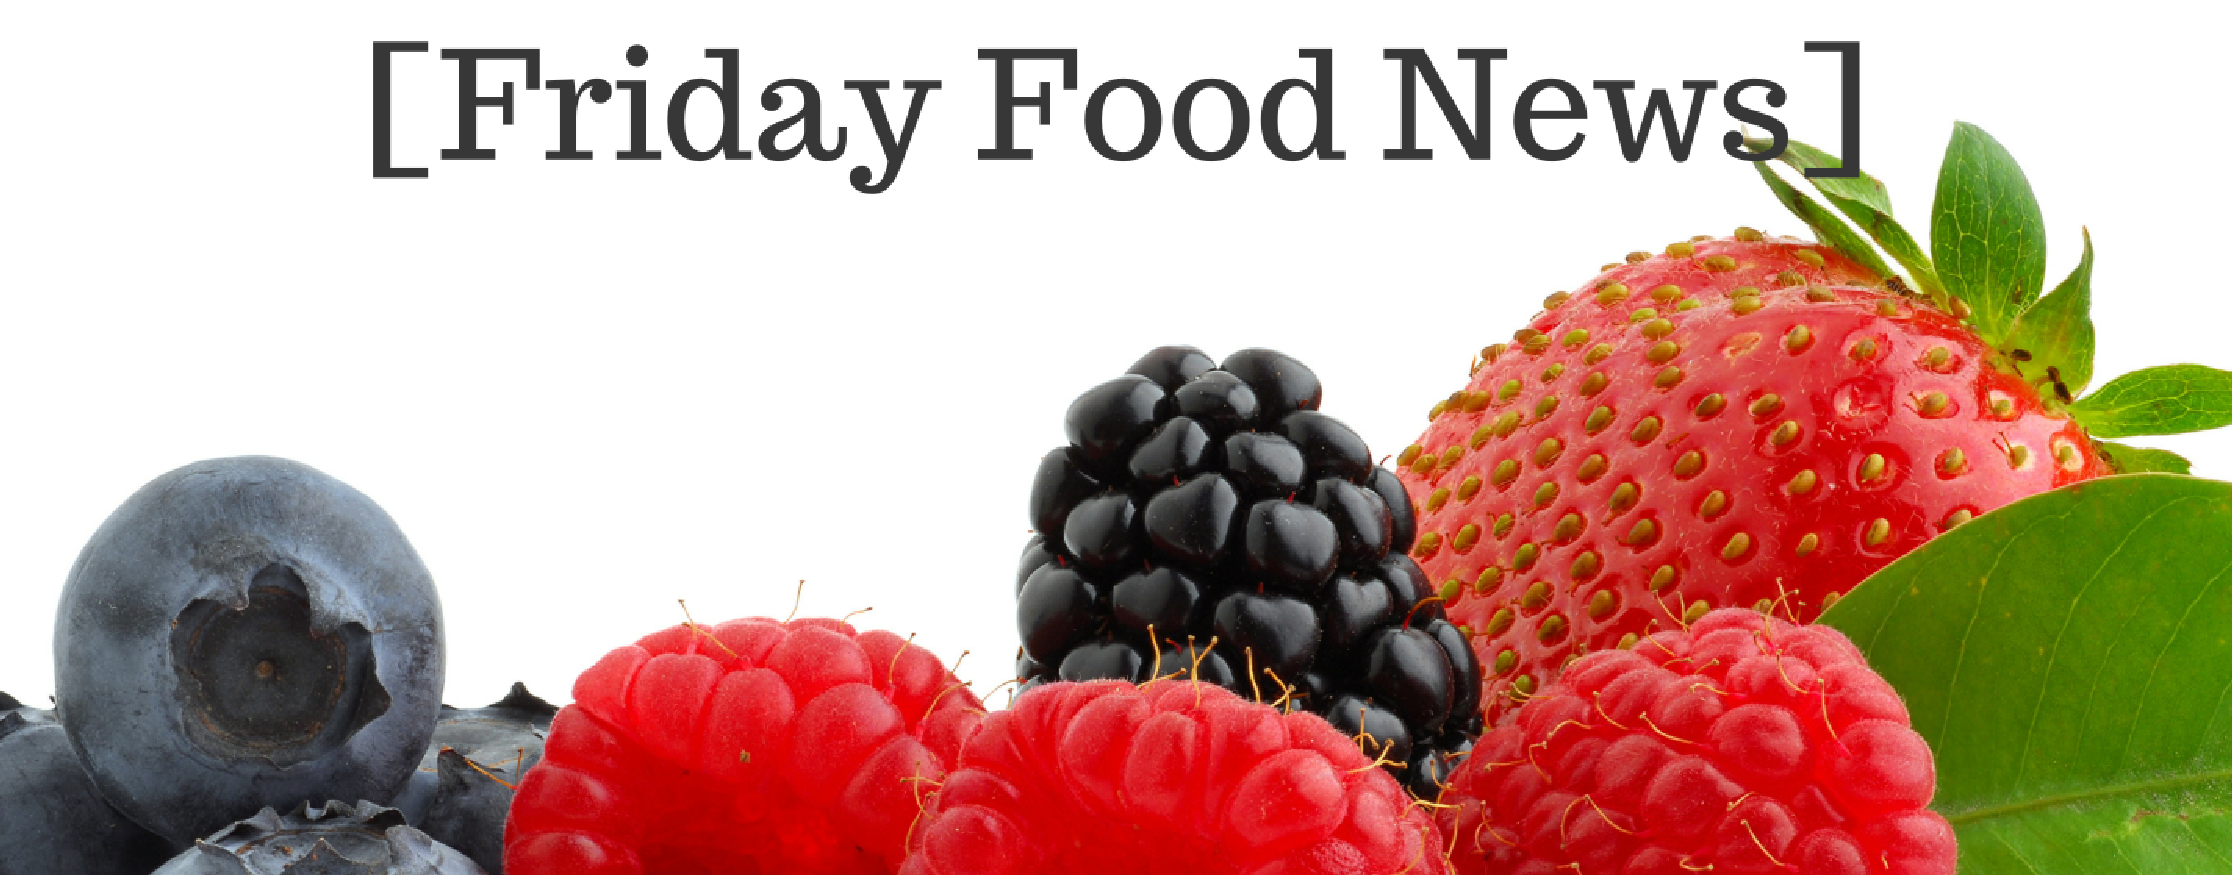 Friday Food News: Trump Names Secretary of Agriculture, Preventive Controls Class, and Guidance for Sprouts